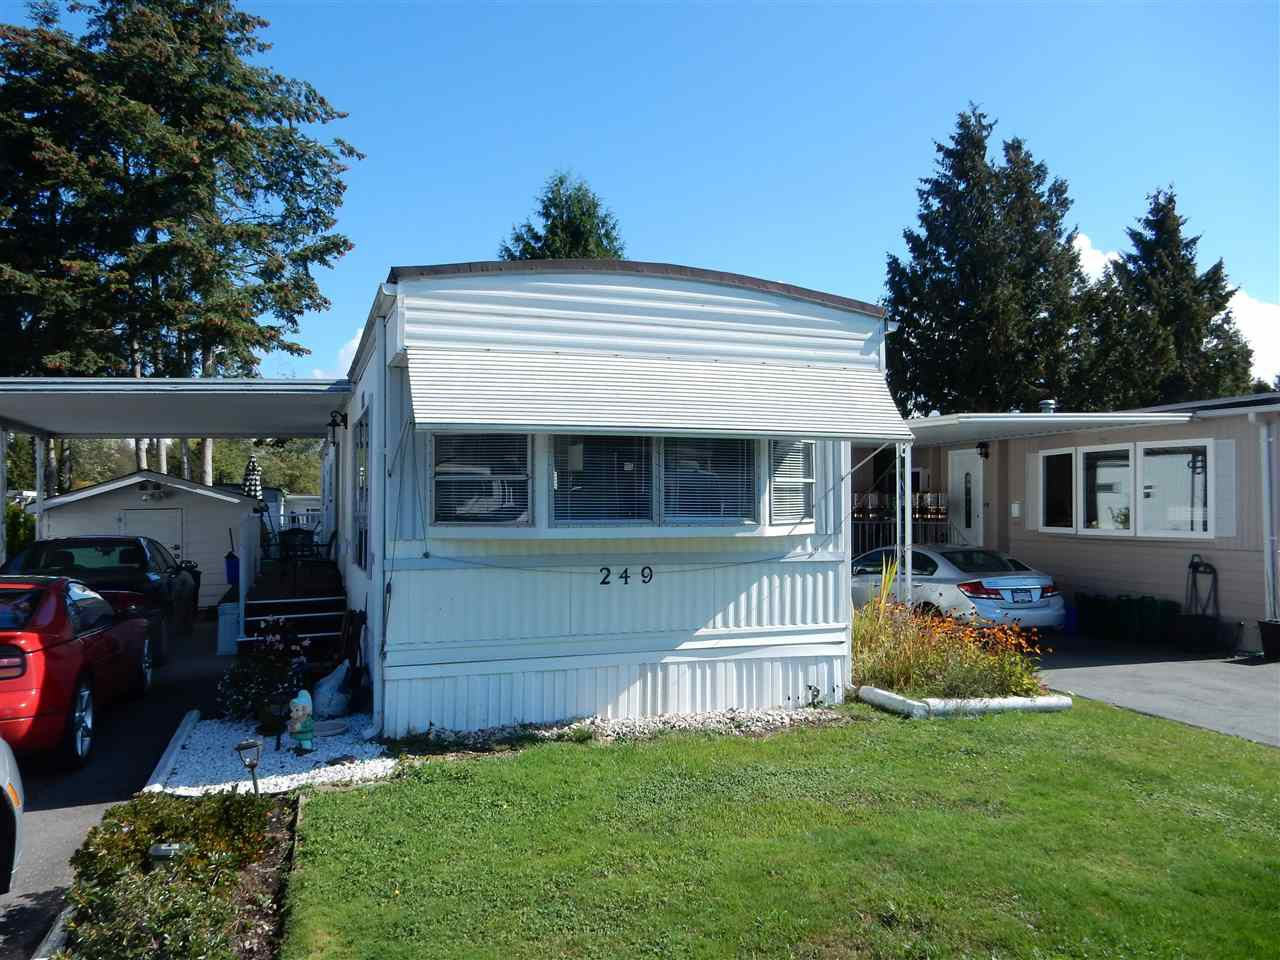 """Main Photo: 249 1840 160 Street in Surrey: King George Corridor Manufactured Home for sale in """"Breakaway Bays"""" (South Surrey White Rock)  : MLS®# R2110222"""